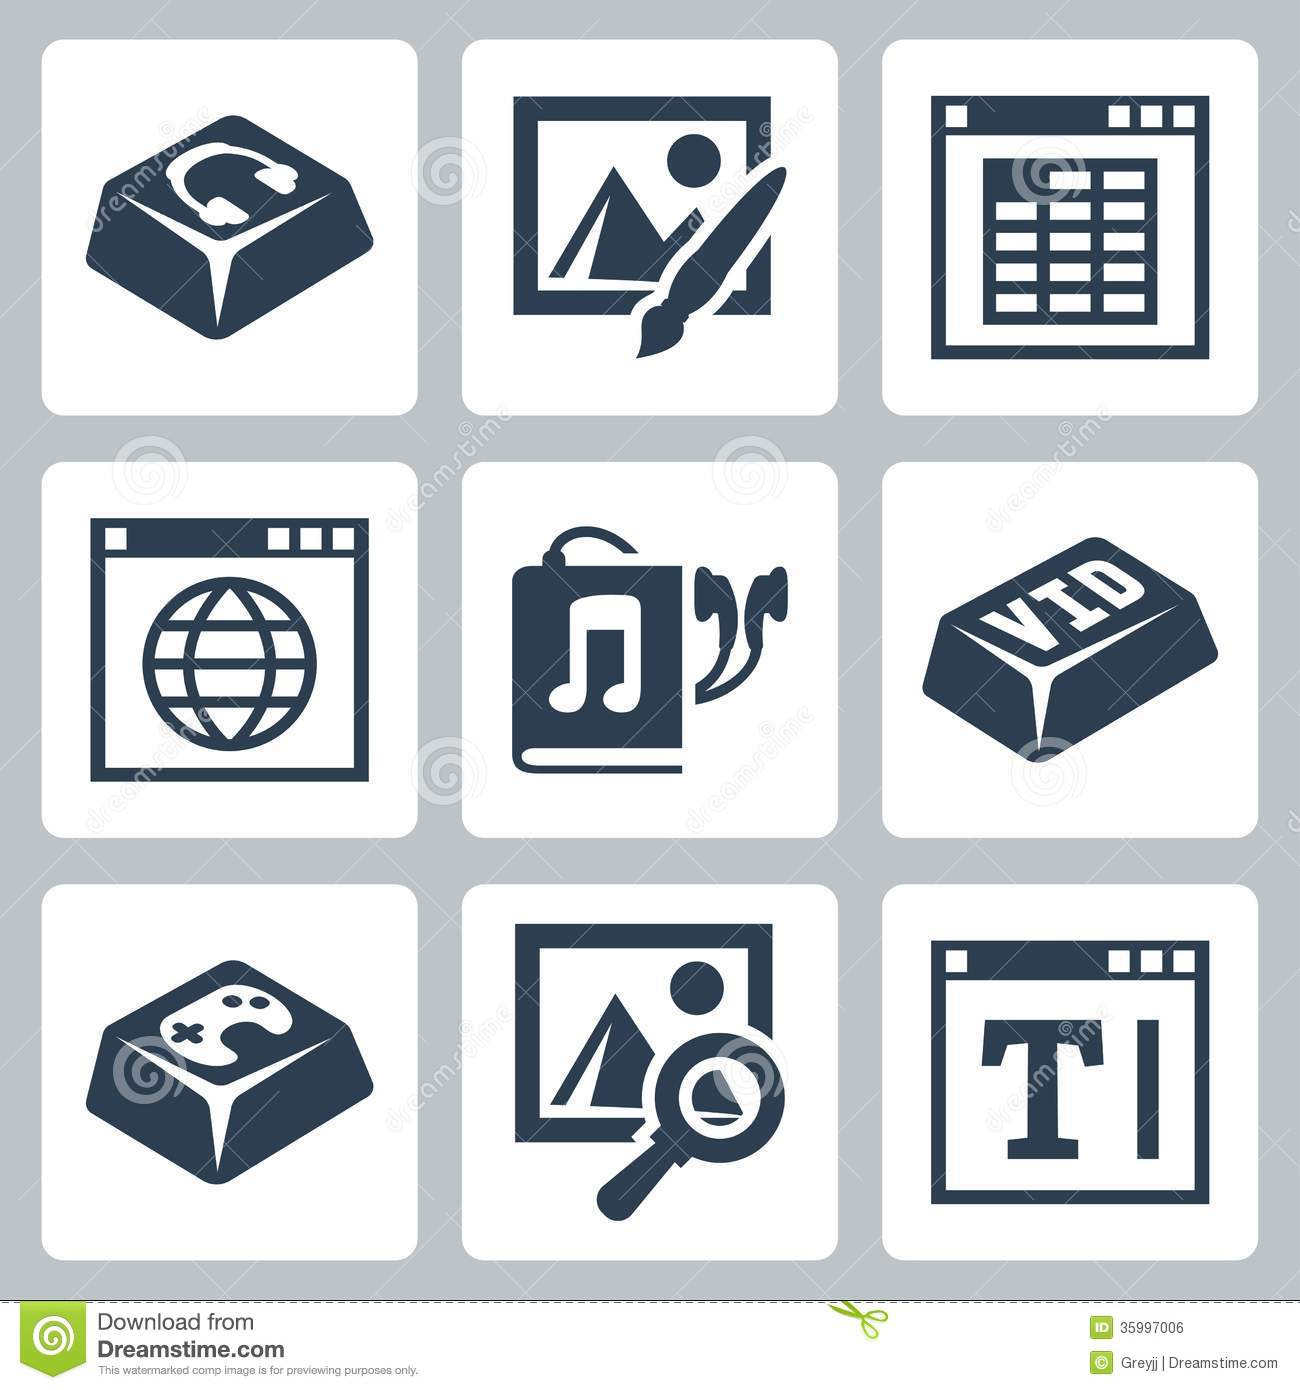 Vector isolated applications icons set royalty free stock Online vector editor